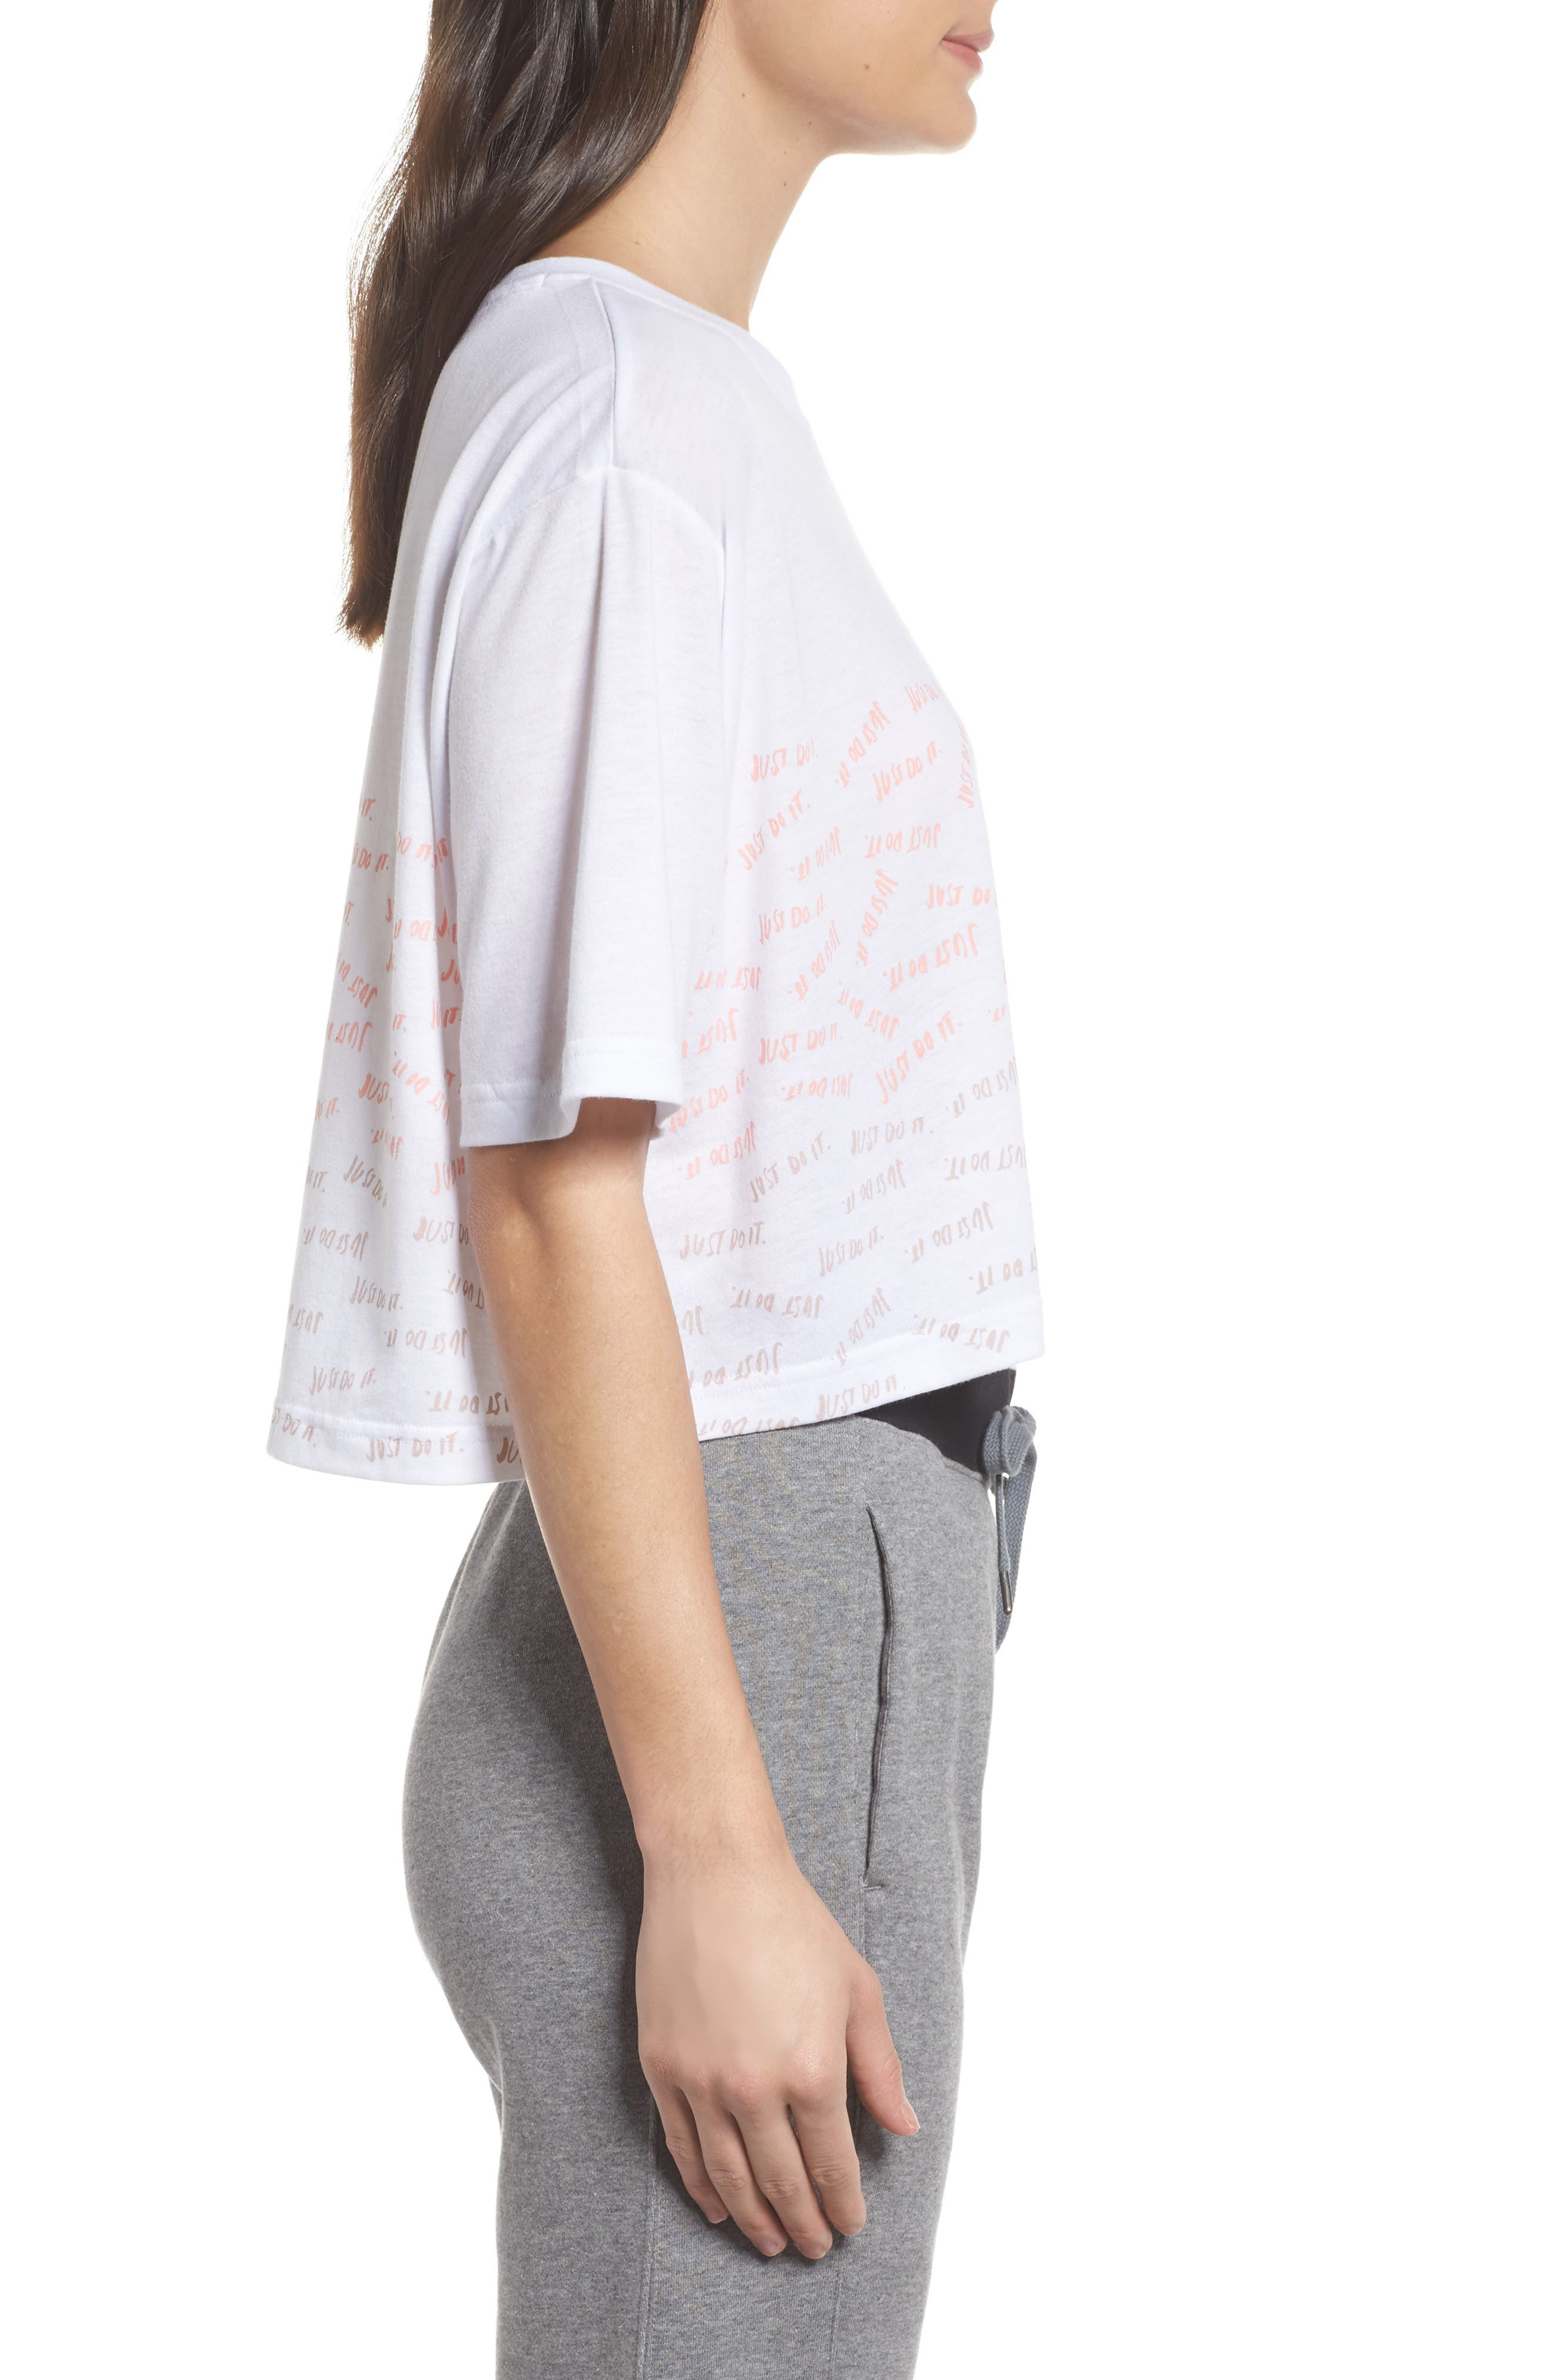 Sportswear Just Do It Tee,                             Alternate thumbnail 6, color,                             White